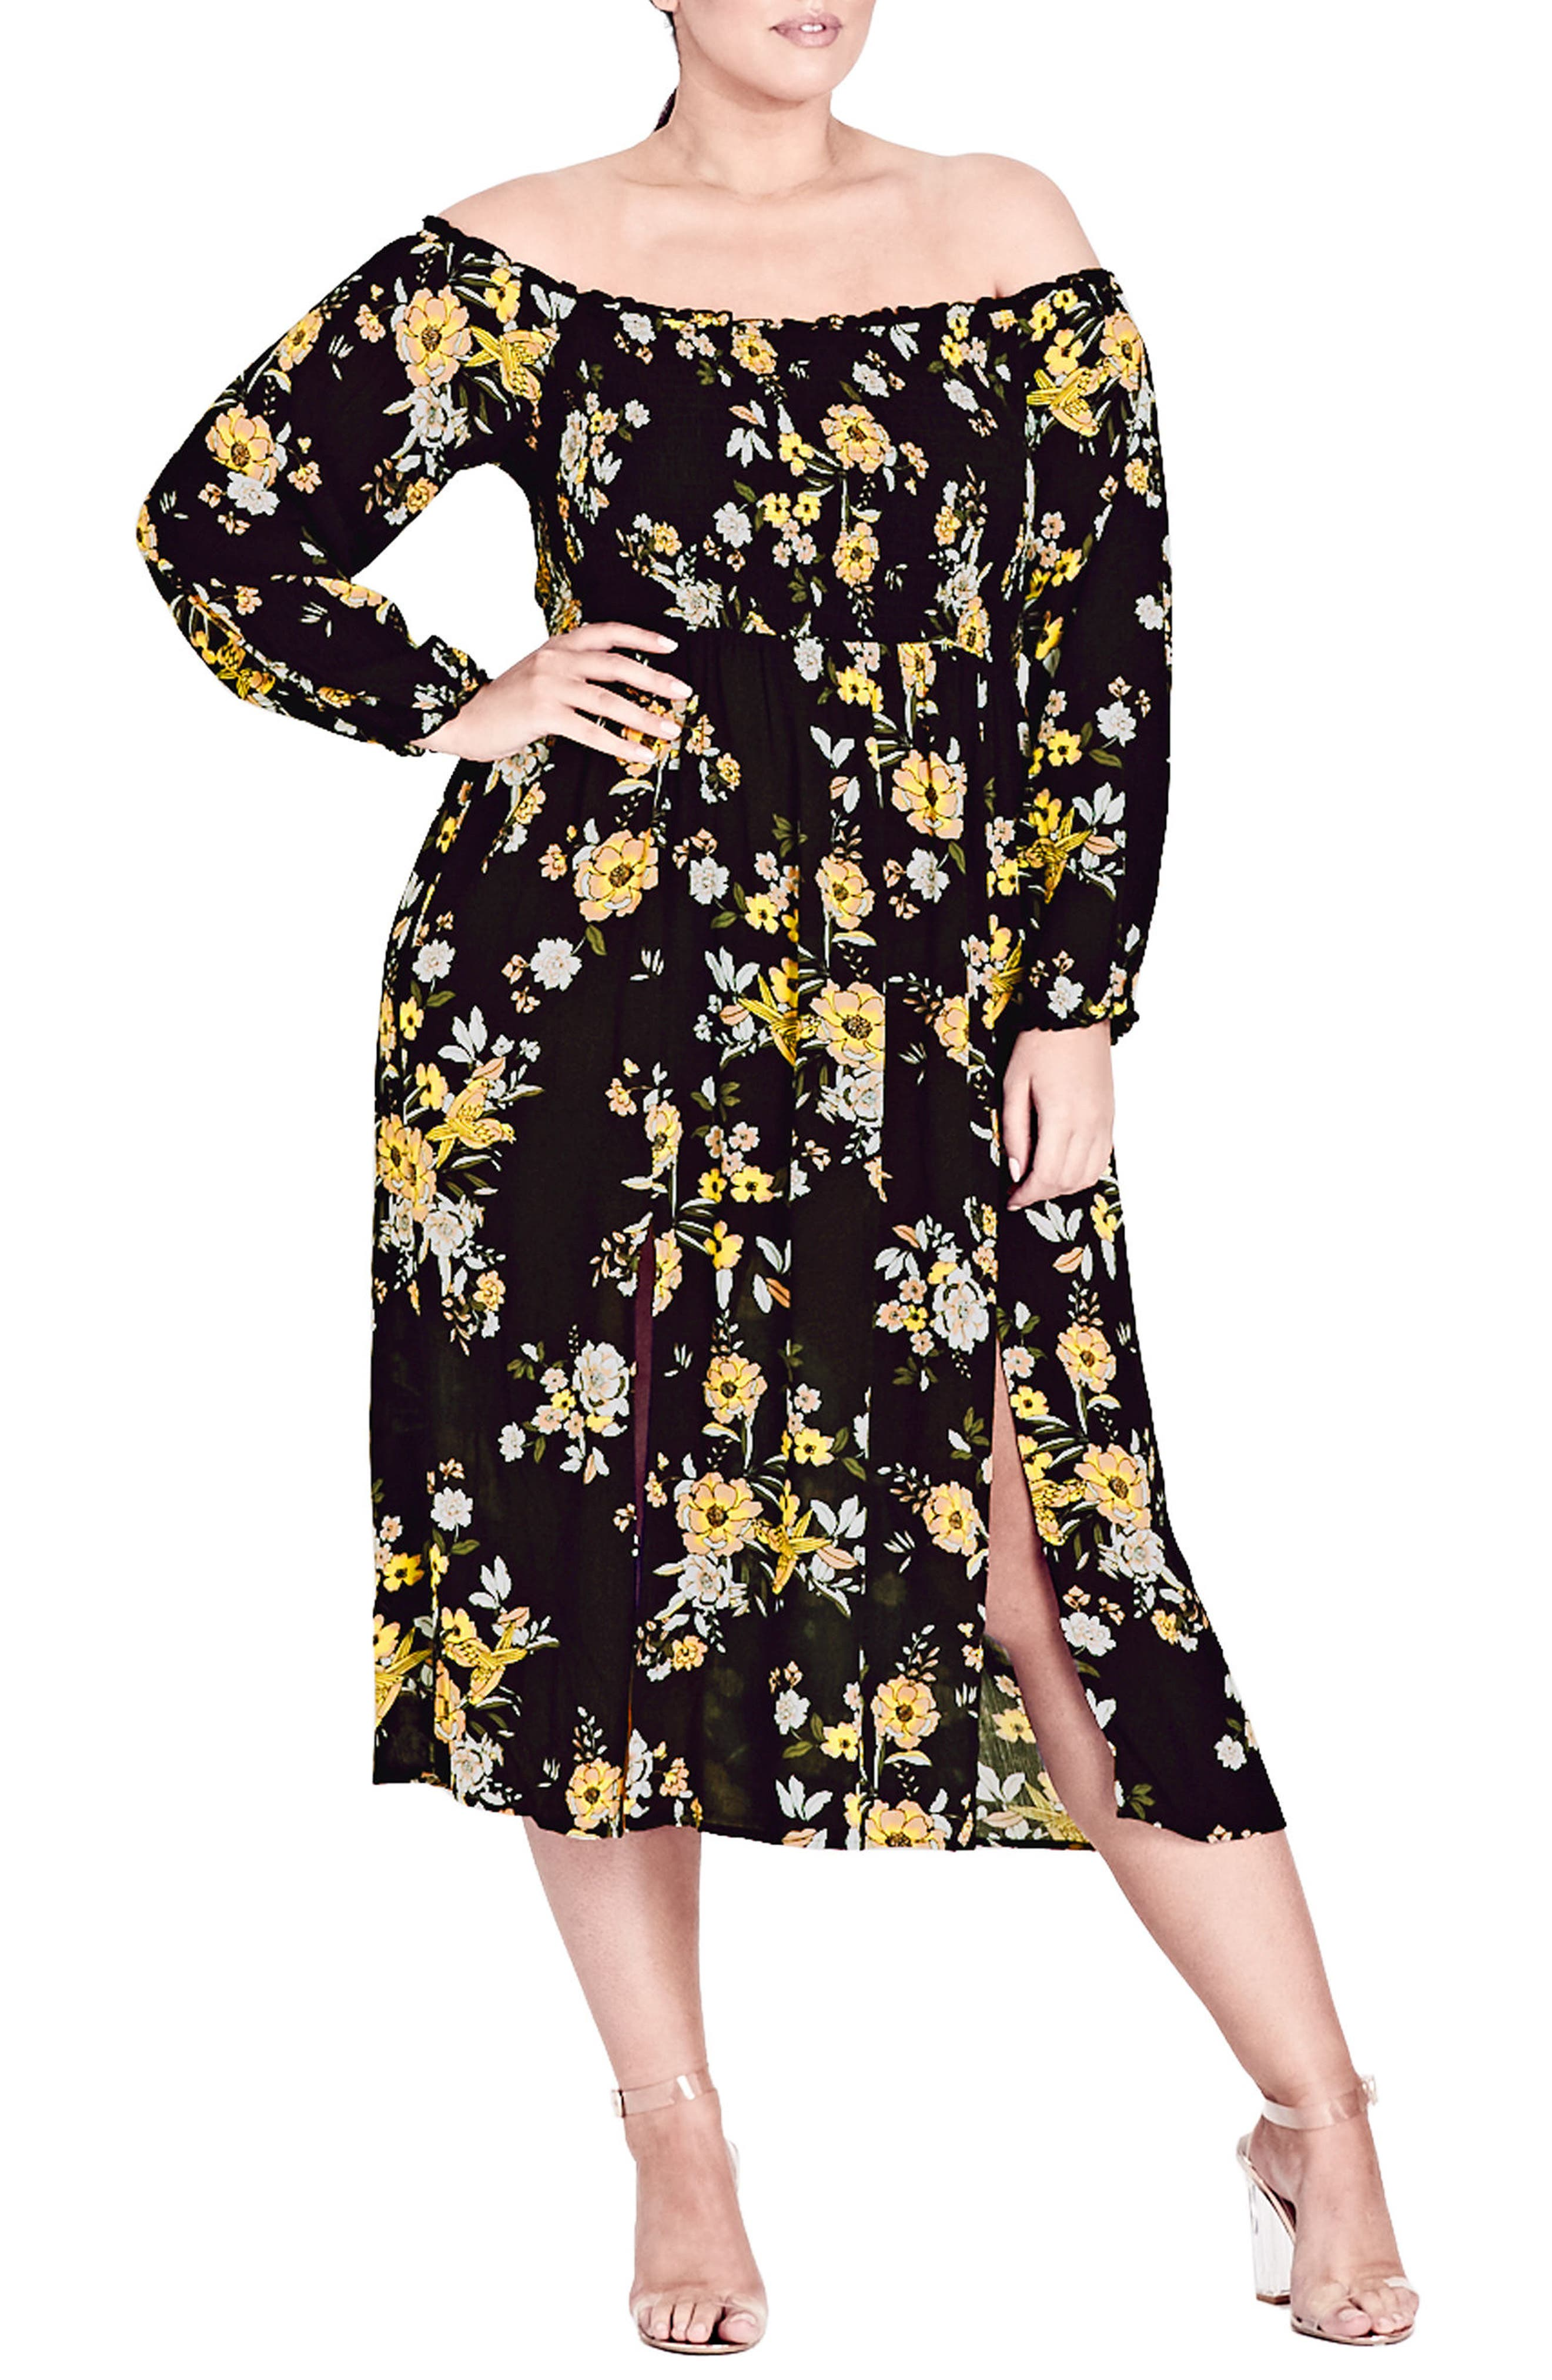 Miss Chirpy Off the Shoulder Dress,                             Main thumbnail 1, color,                             Miss Chirpy